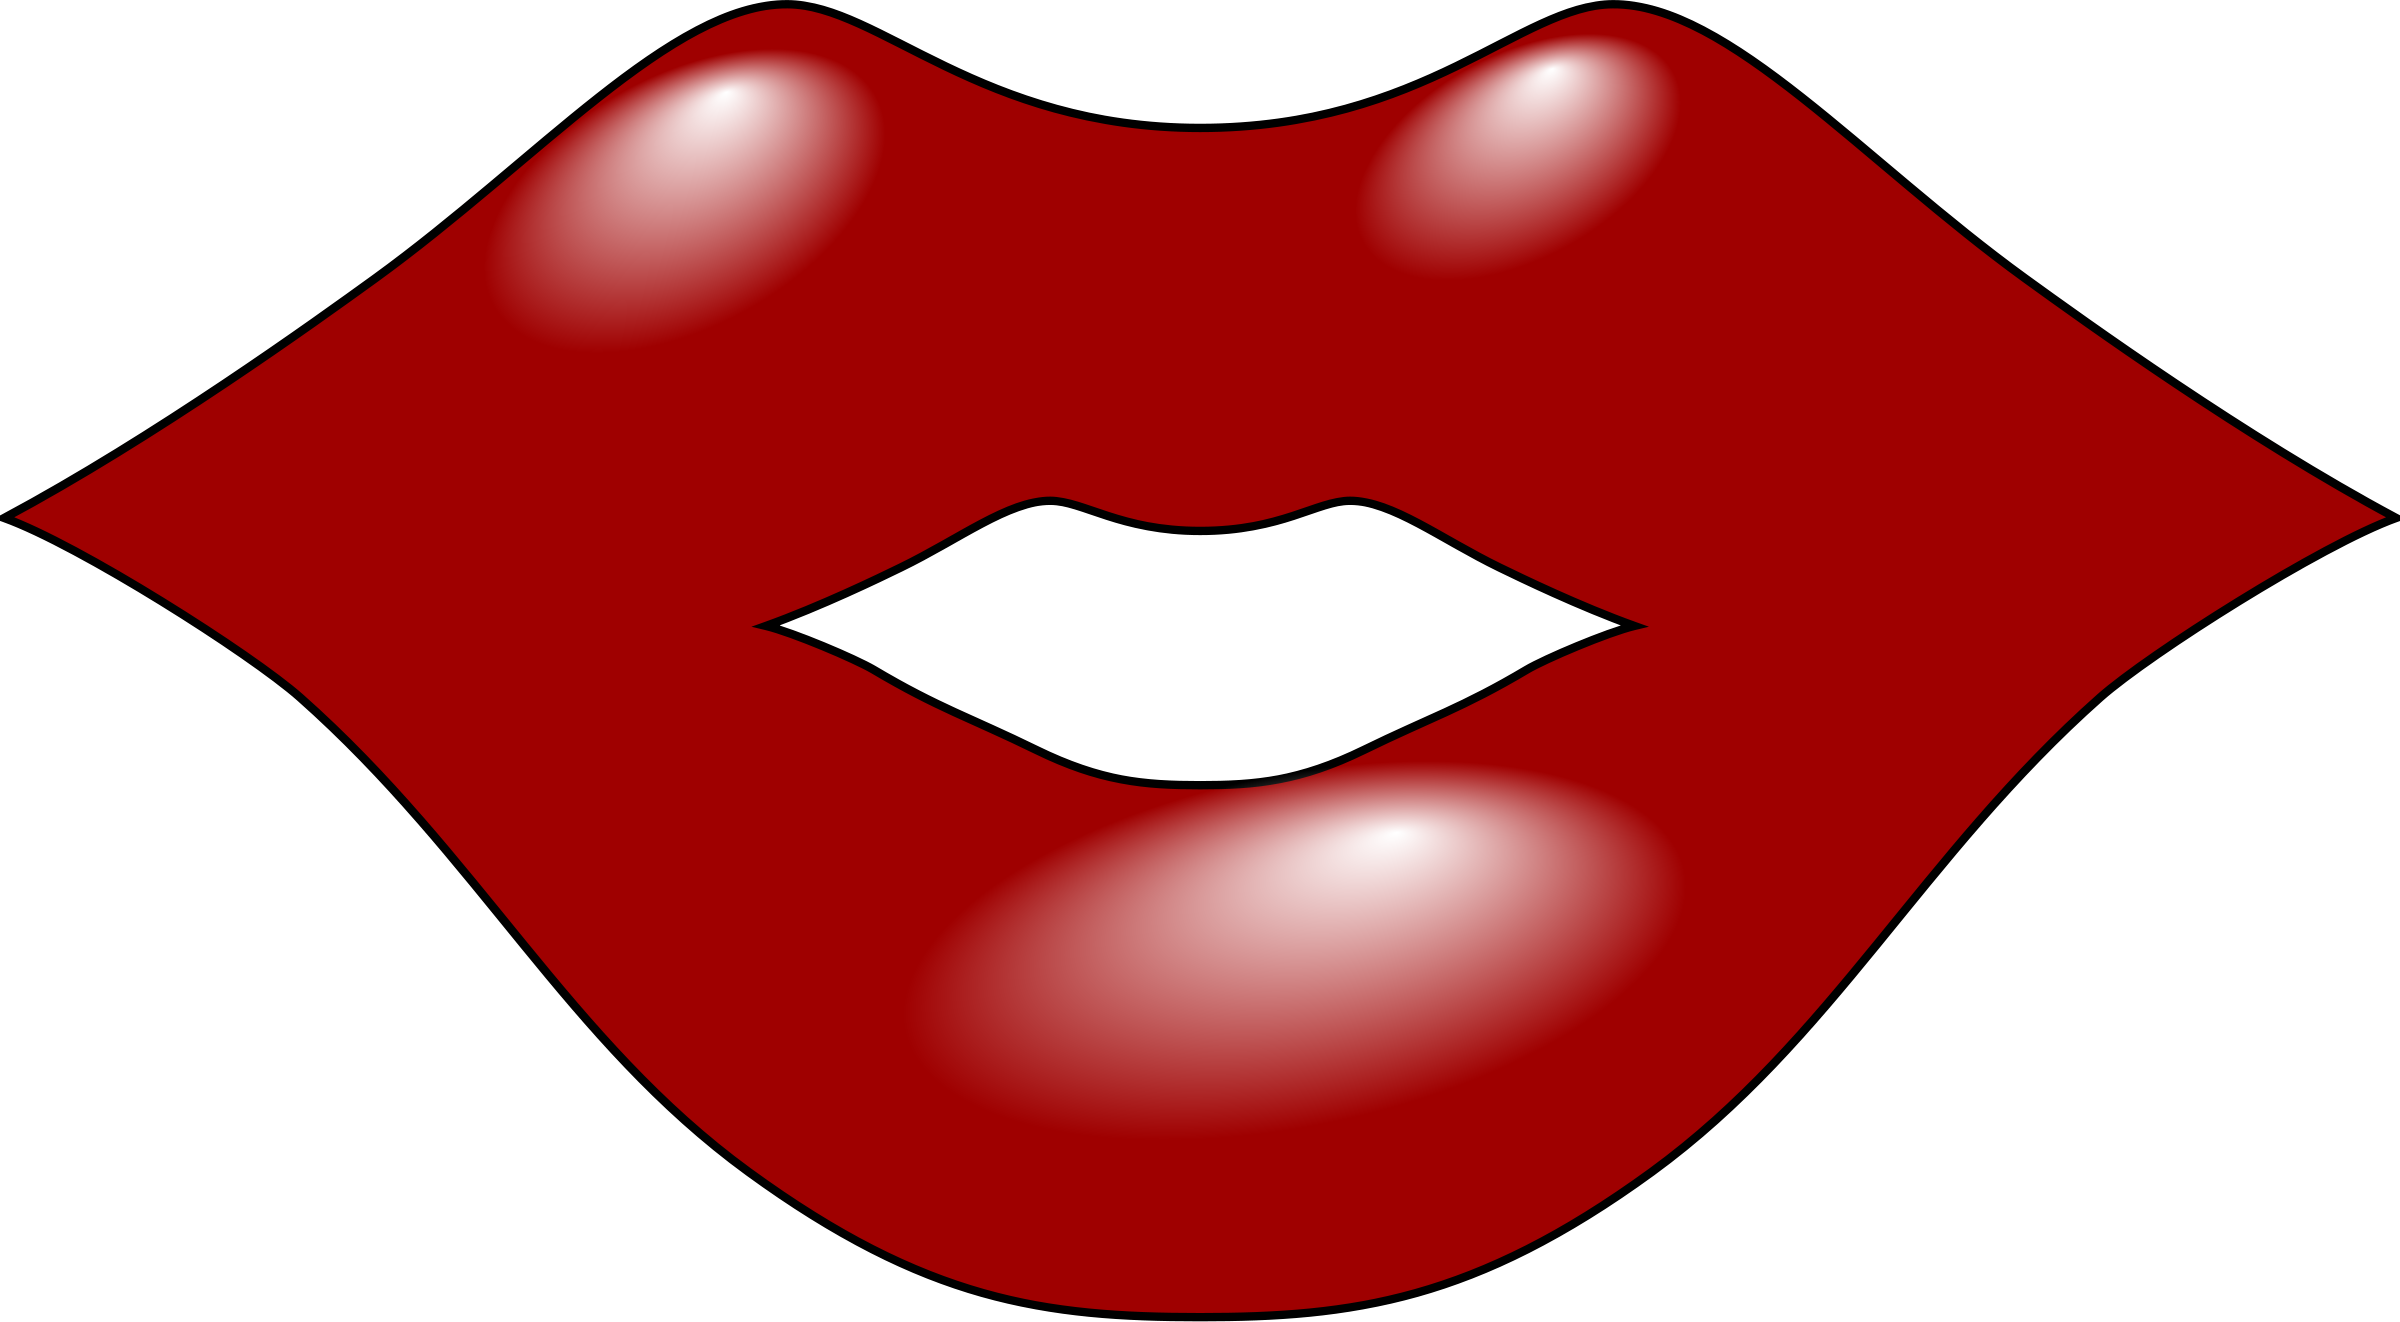 Taste clipart lip tongue. Lips